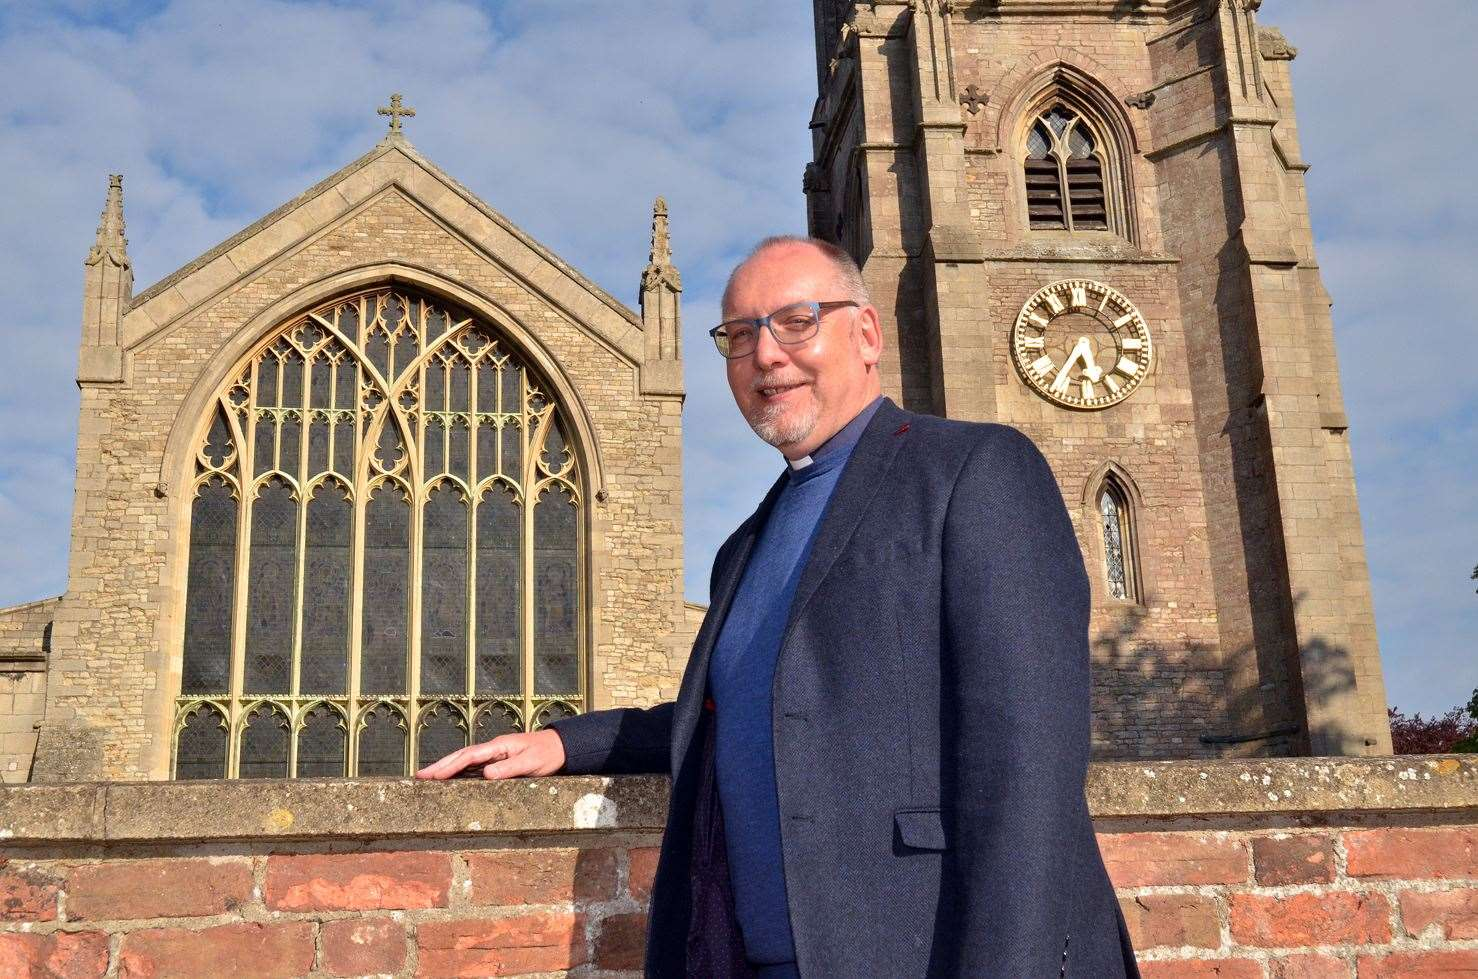 Rev John Bennett, vicar of St Mary and St Nicolas Church in Spalding, has helped organise the event, called A Spalding Harvest.